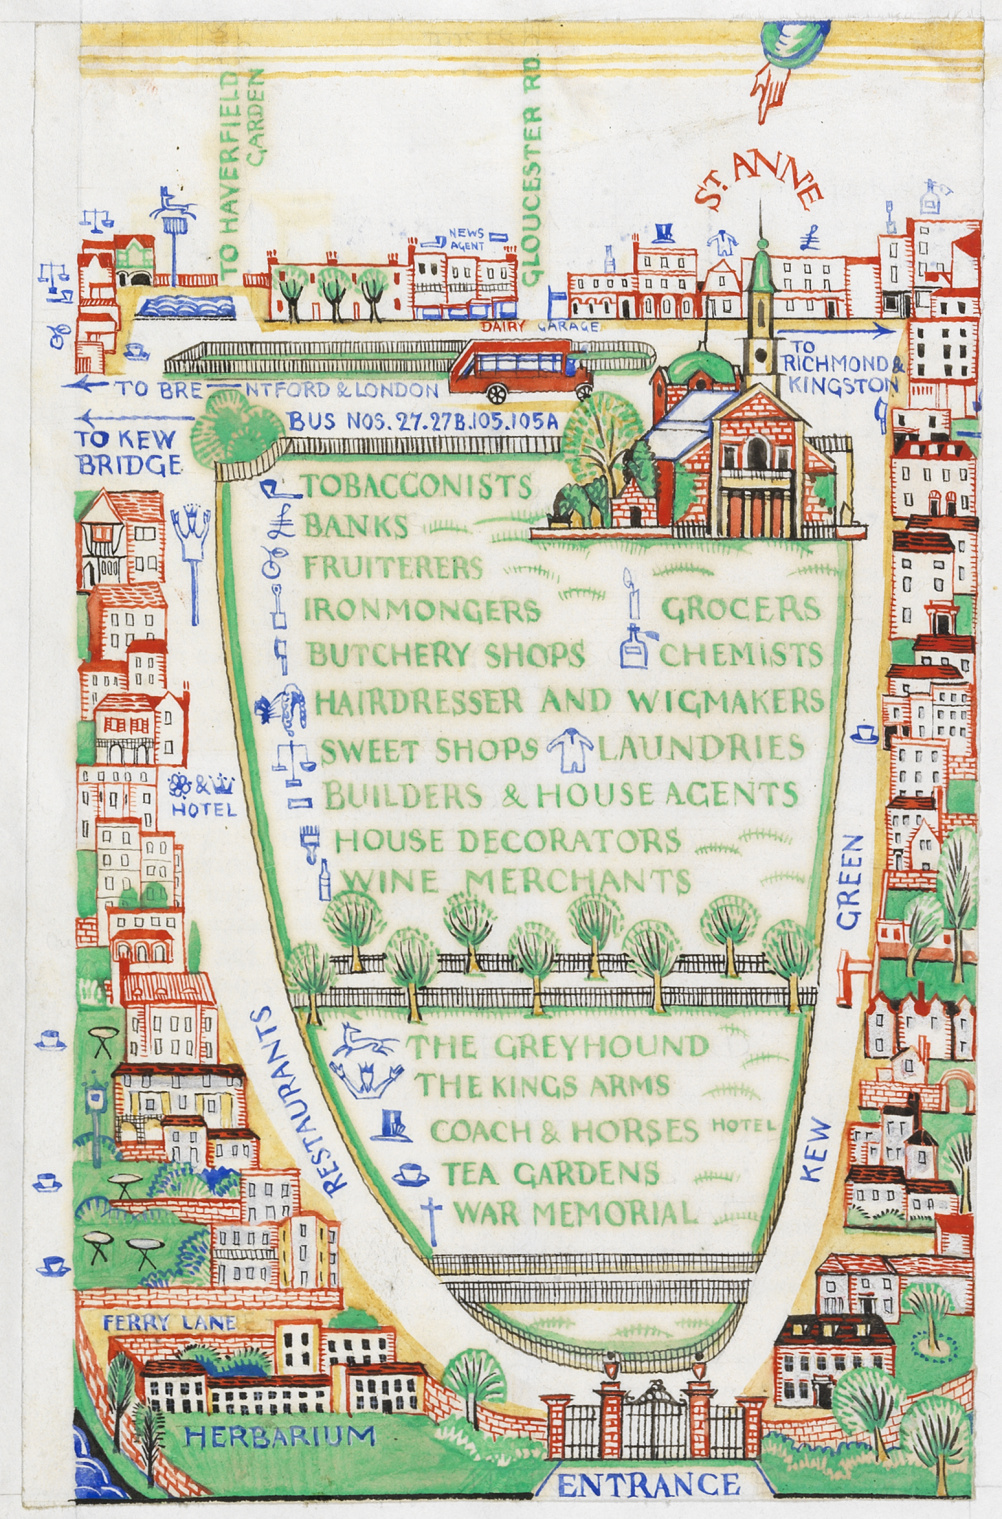 Edward Bawden (1903 – 1989) Detail from A General Guide to the Royal Botanic Gardens Kew, Spring & Easter 1923 © The Edward Bawden Estate Purchased with the assistance of the Art Fund